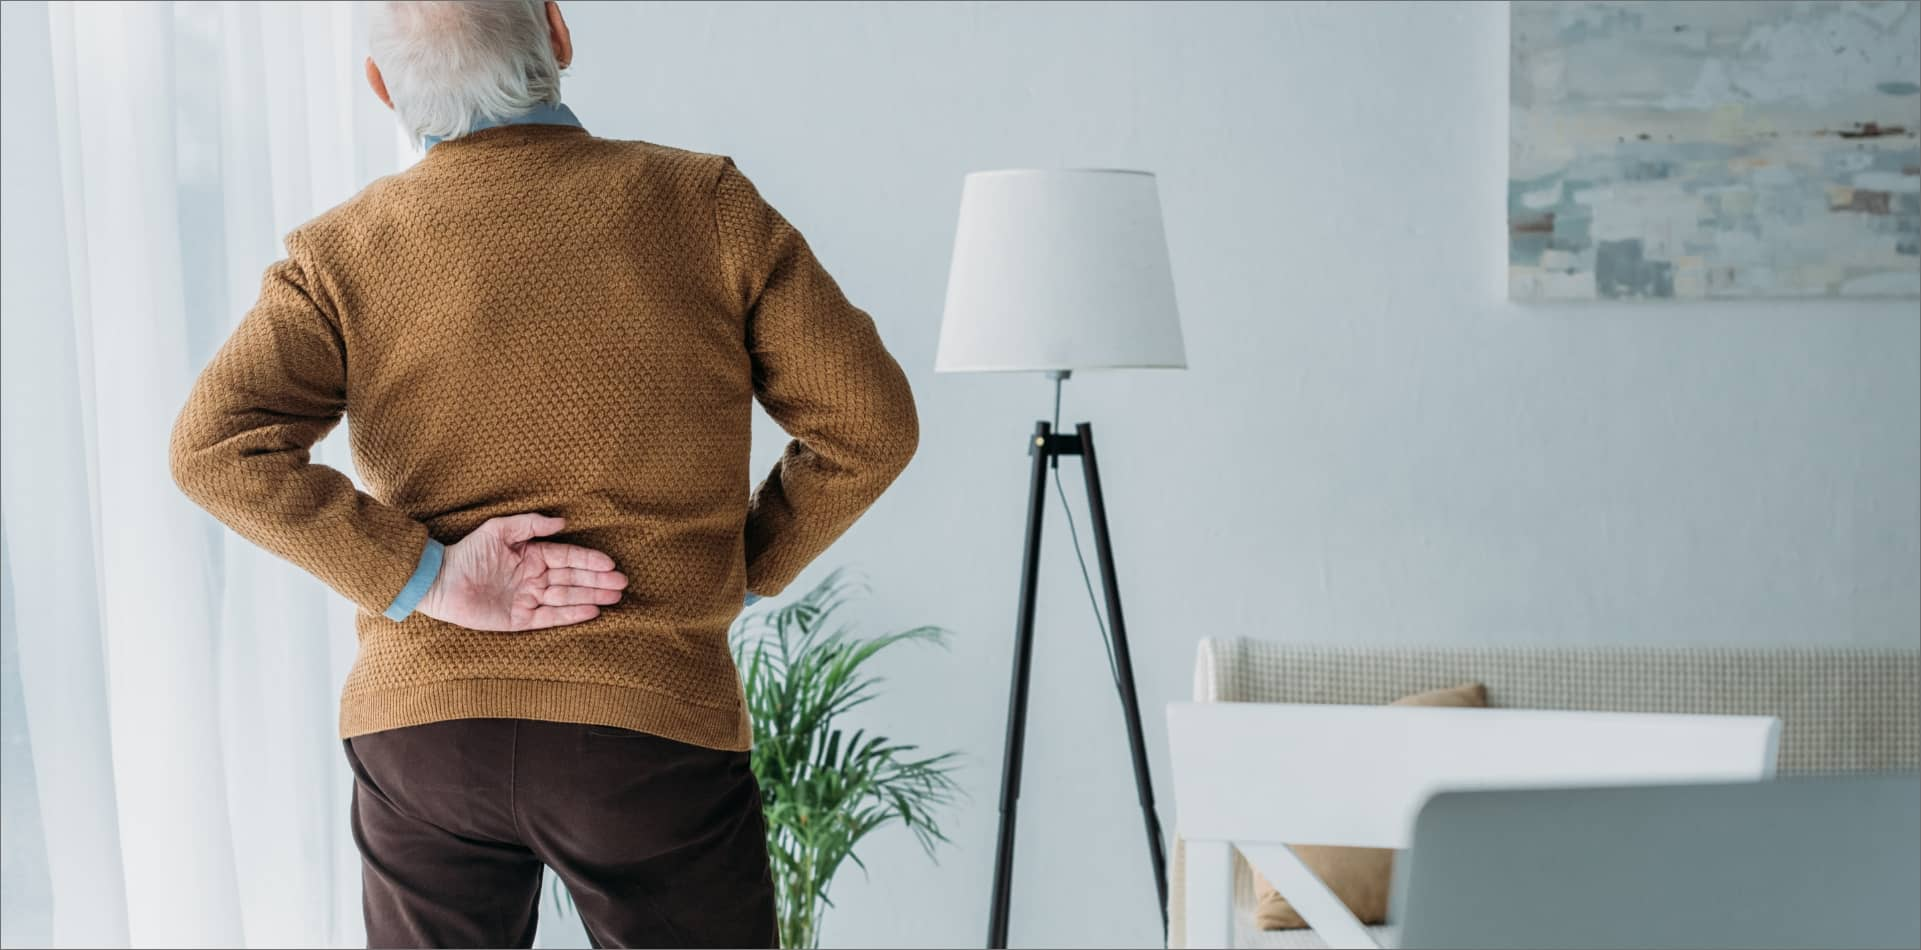 Is low back pain bothering you? Read our article to learn more about acute low back pain from a Harvard-trained back pain doc in Paramus.